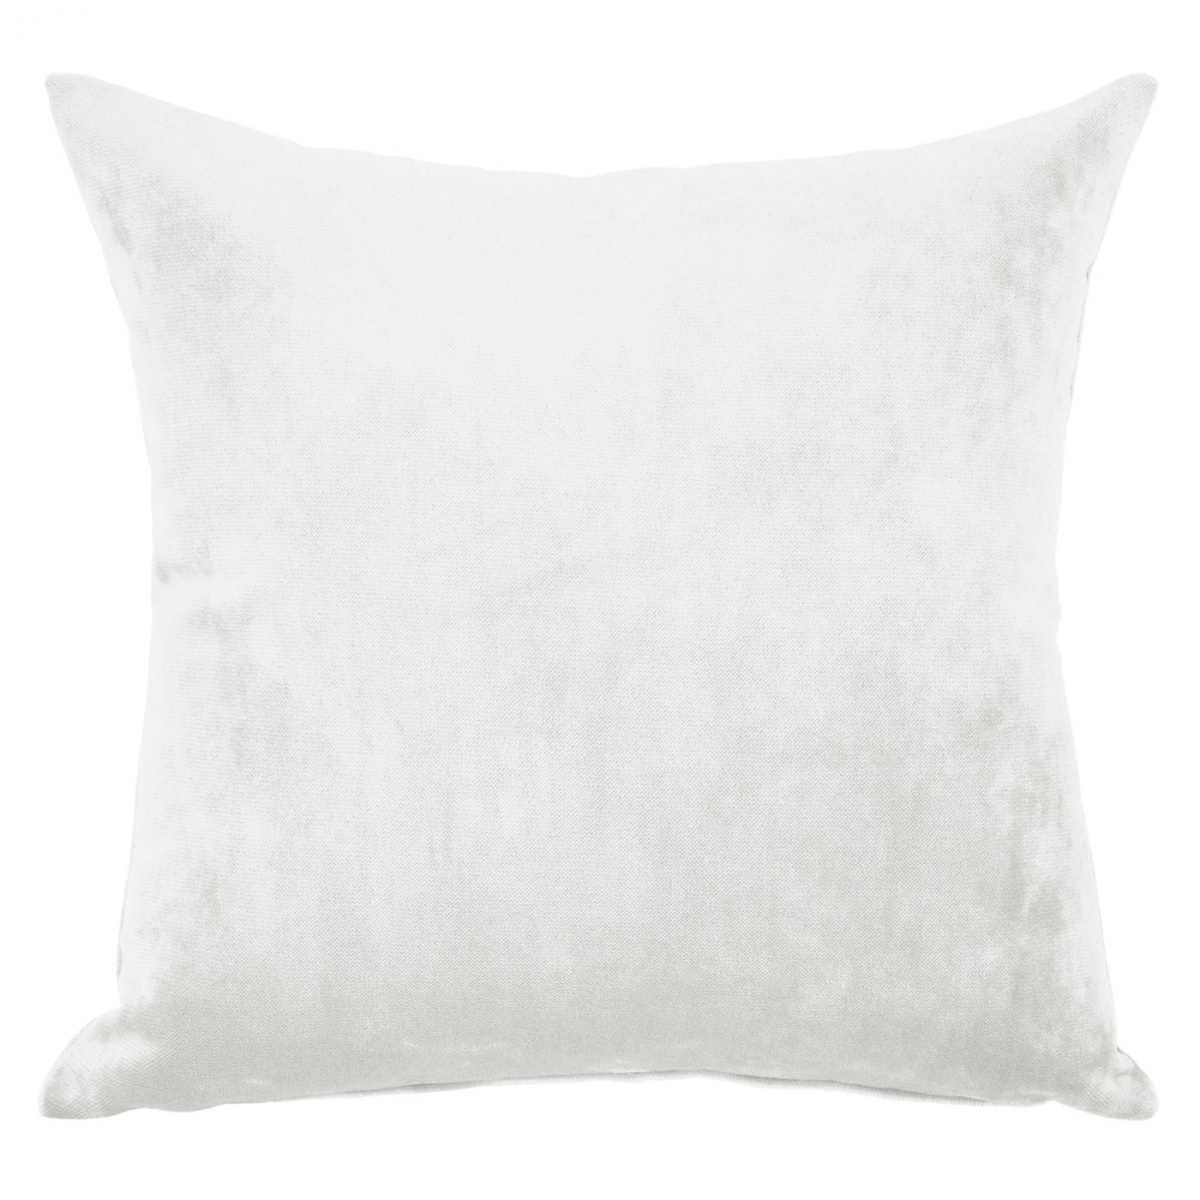 Mystere Dove Velvet Cushion - 50x50cm